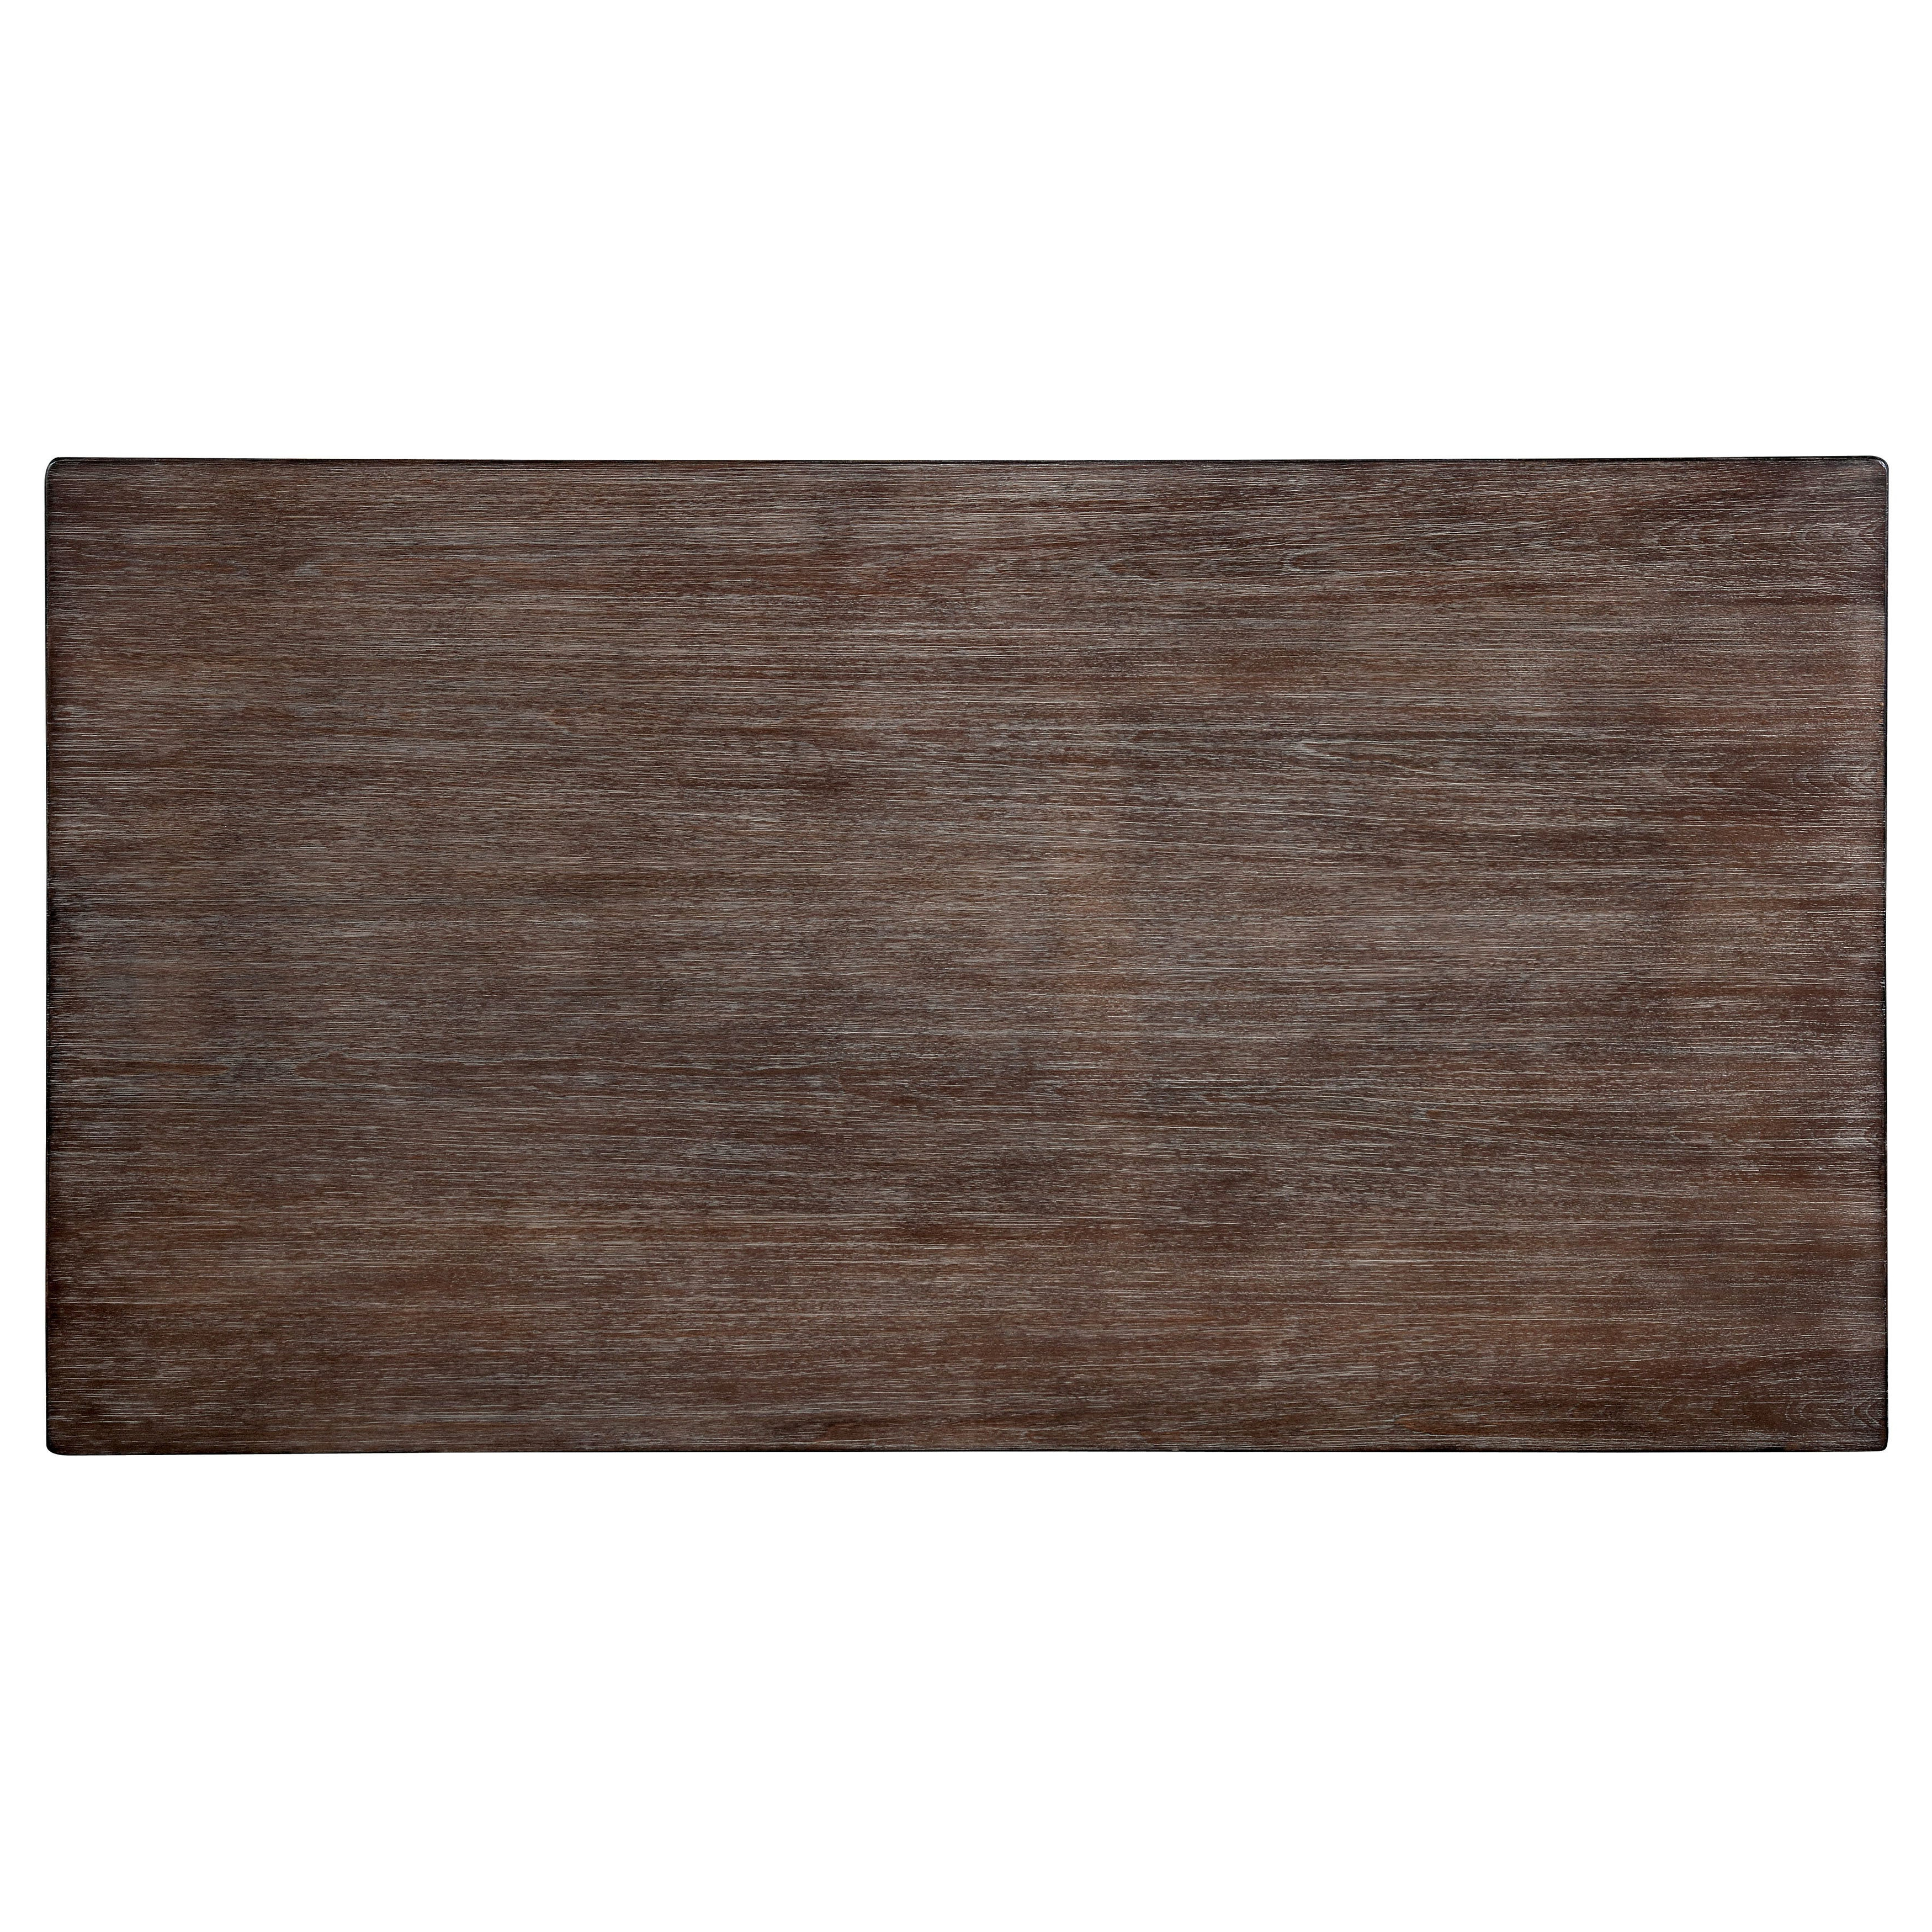 Preferred Jessa Rustic Country 54 Inch Coffee Tables Regarding Jessa Rustic Country 54 Inch Coffee Tablefoa (View 10 of 20)